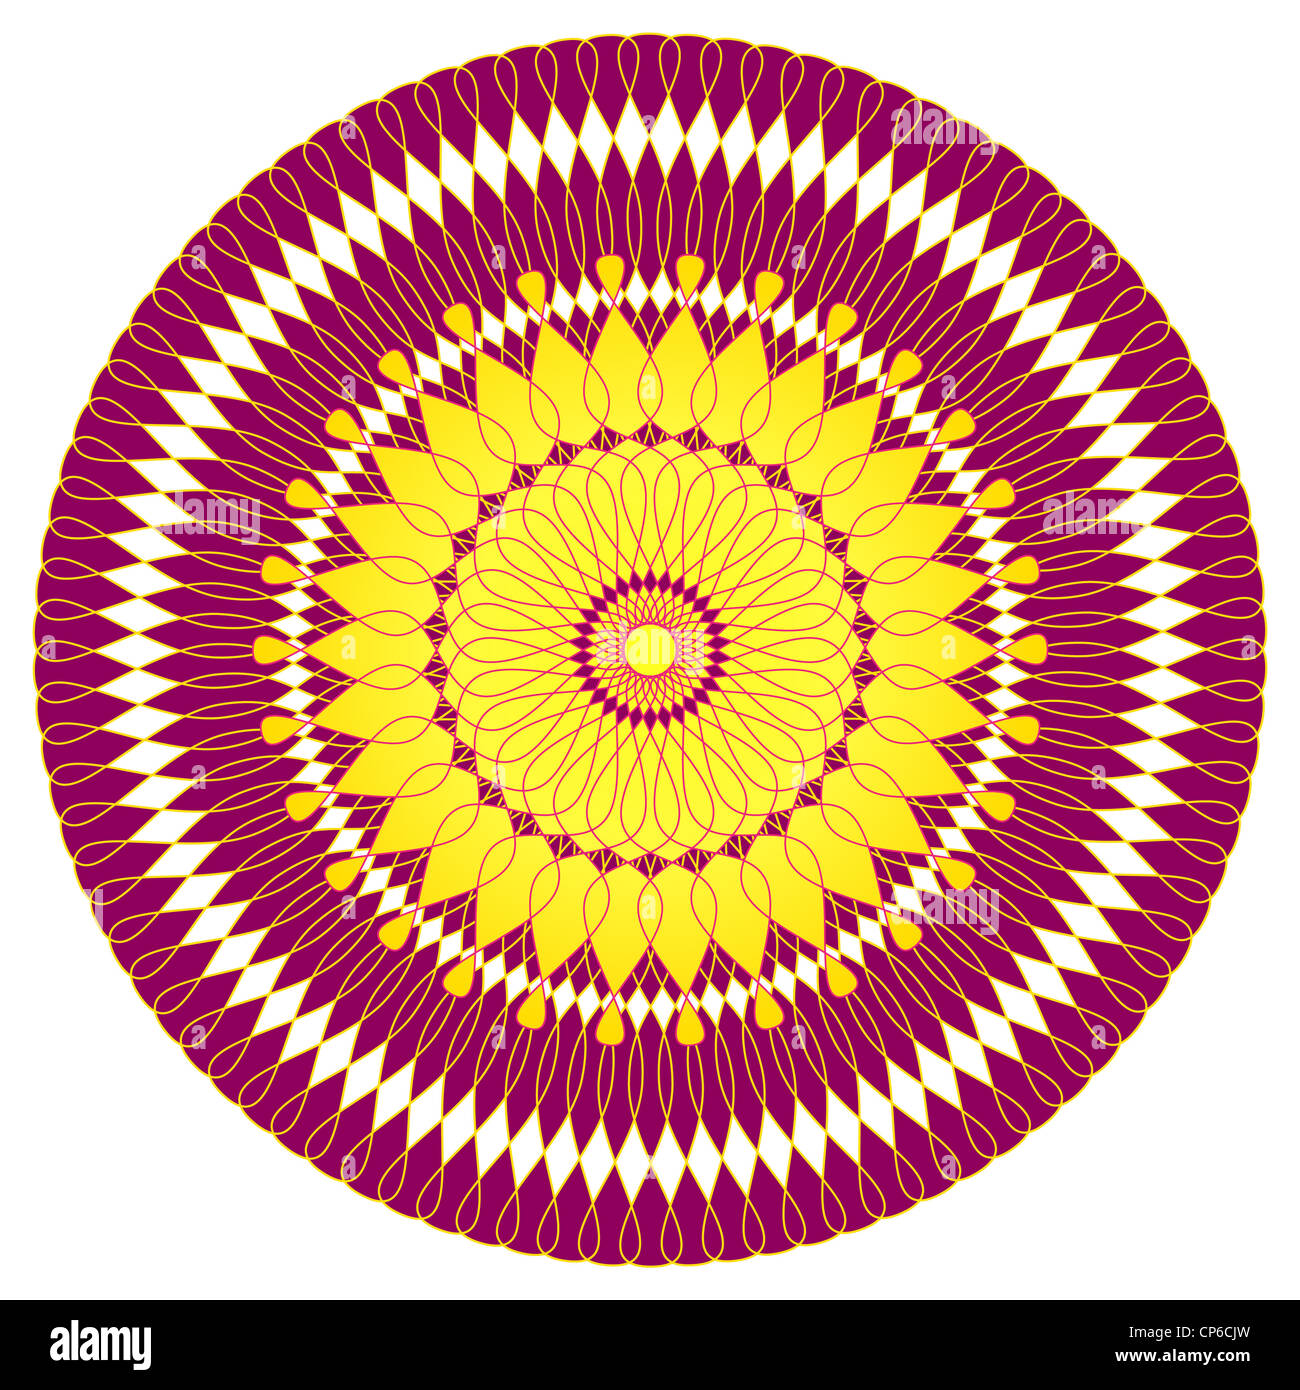 Artistic flower mandala design in purple and yellow Stock Photo